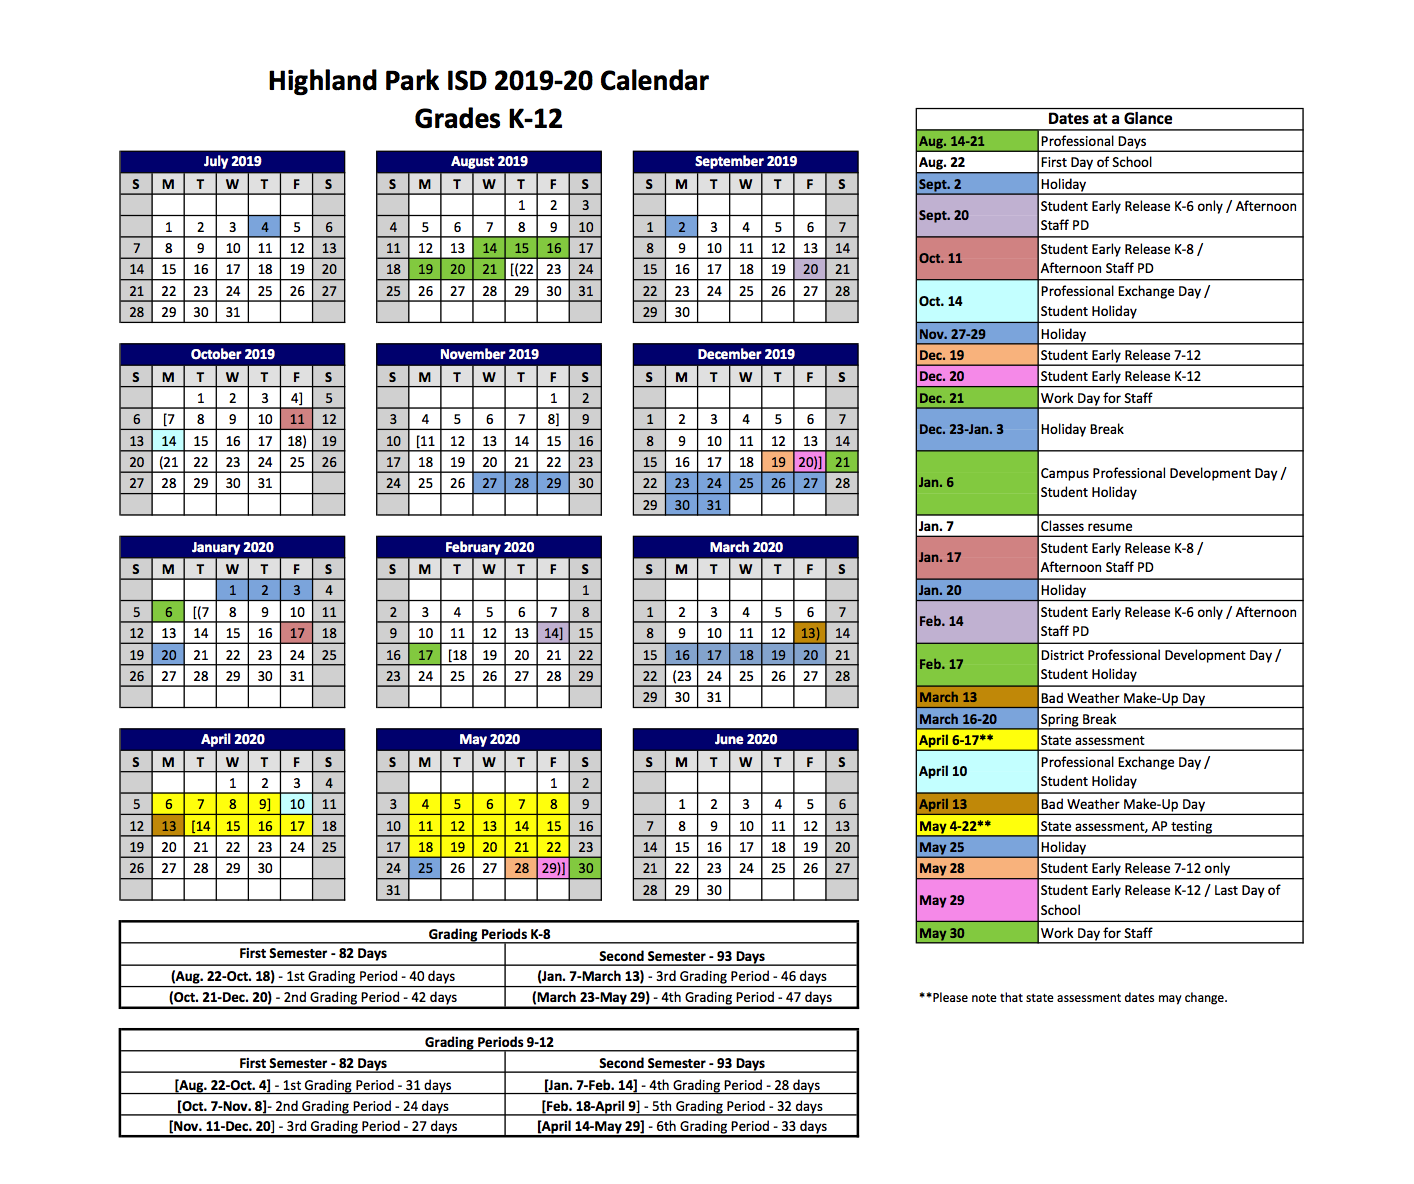 2020 Calendar Please 2019 2020 HPISD Calendar – Calendars – Highland Park Independent